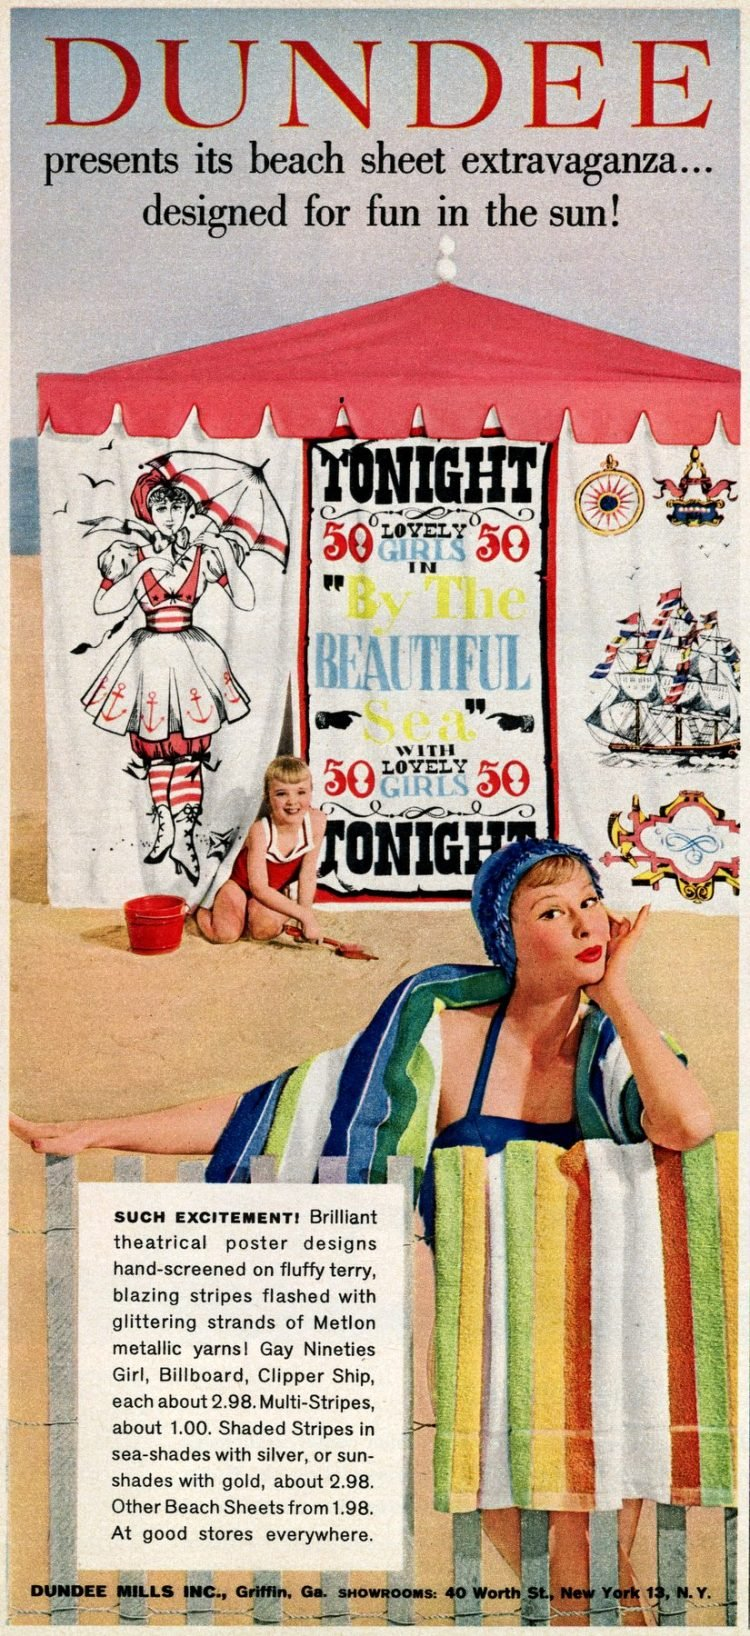 Vintage Dundee towels from 1958